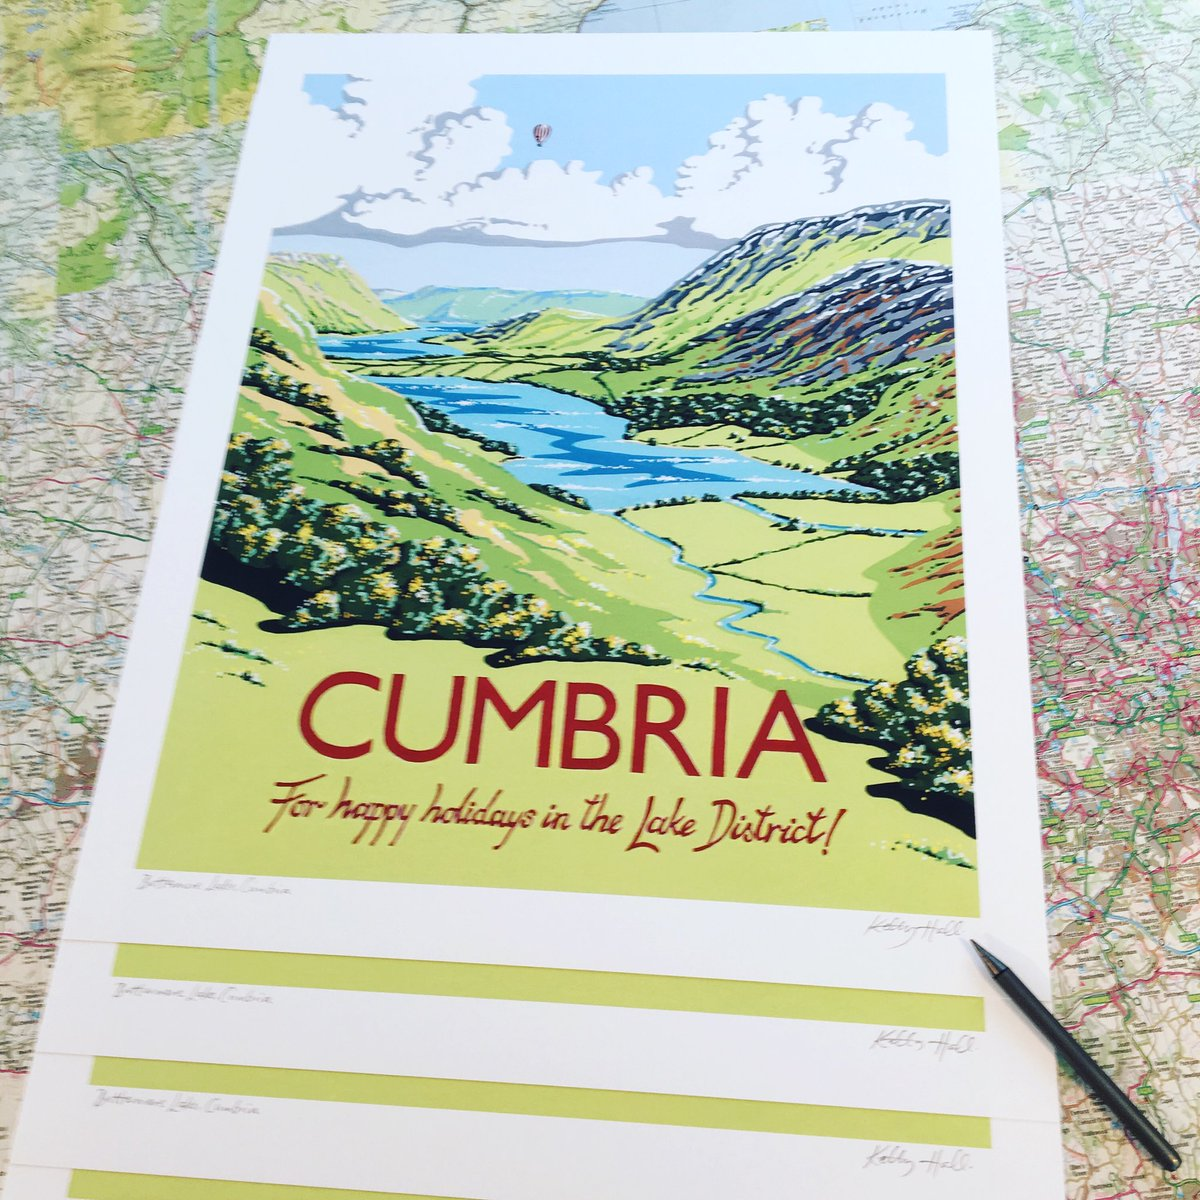 Kelly Hall Designs On Twitter Signing New Cumbria Prints